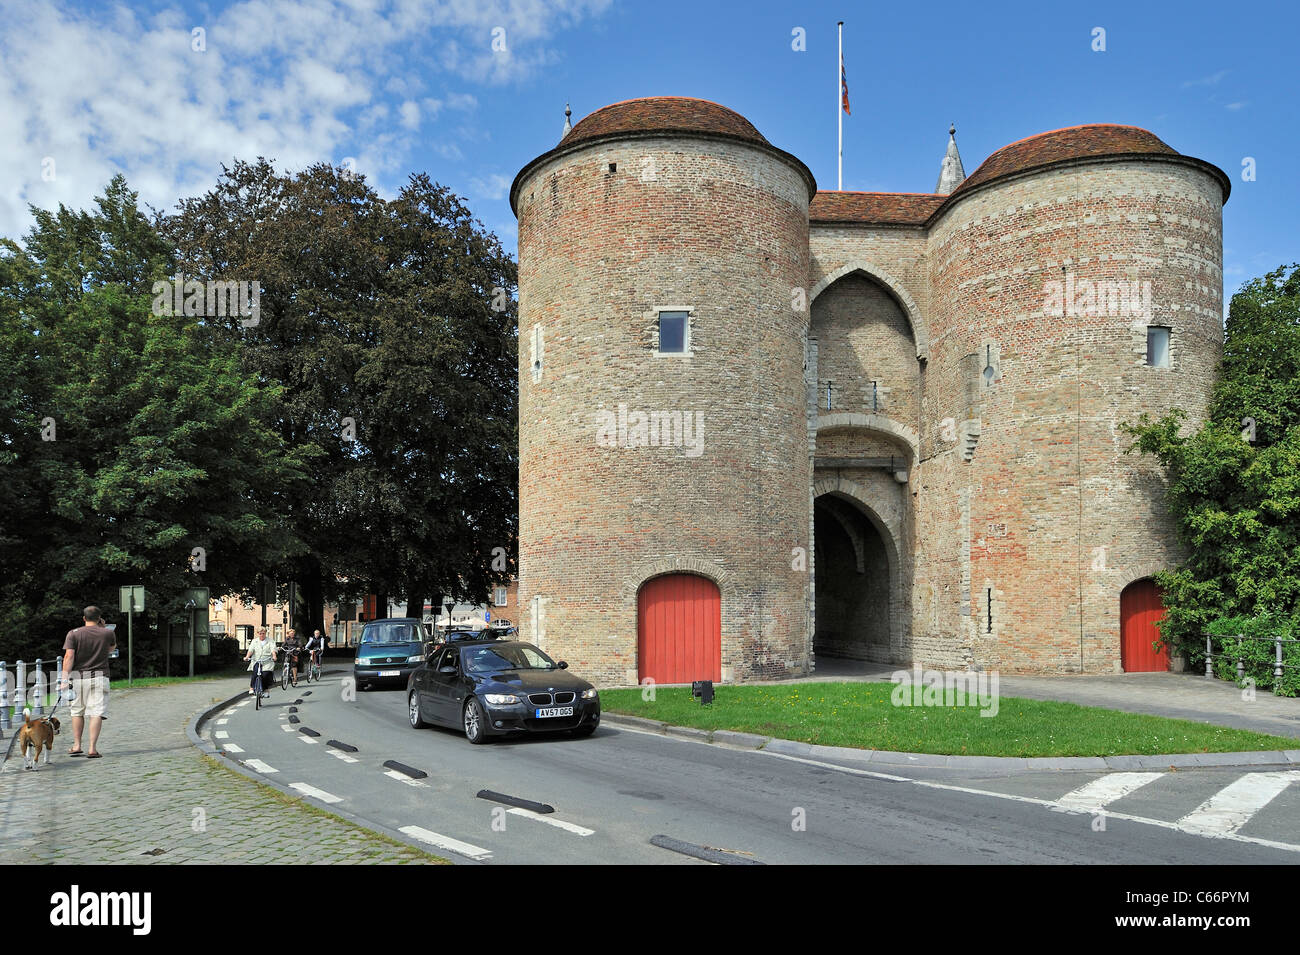 Traffic leaving town and the city gate Gentpoort / Ghent Gate in Bruges, Belgium Stock Photo